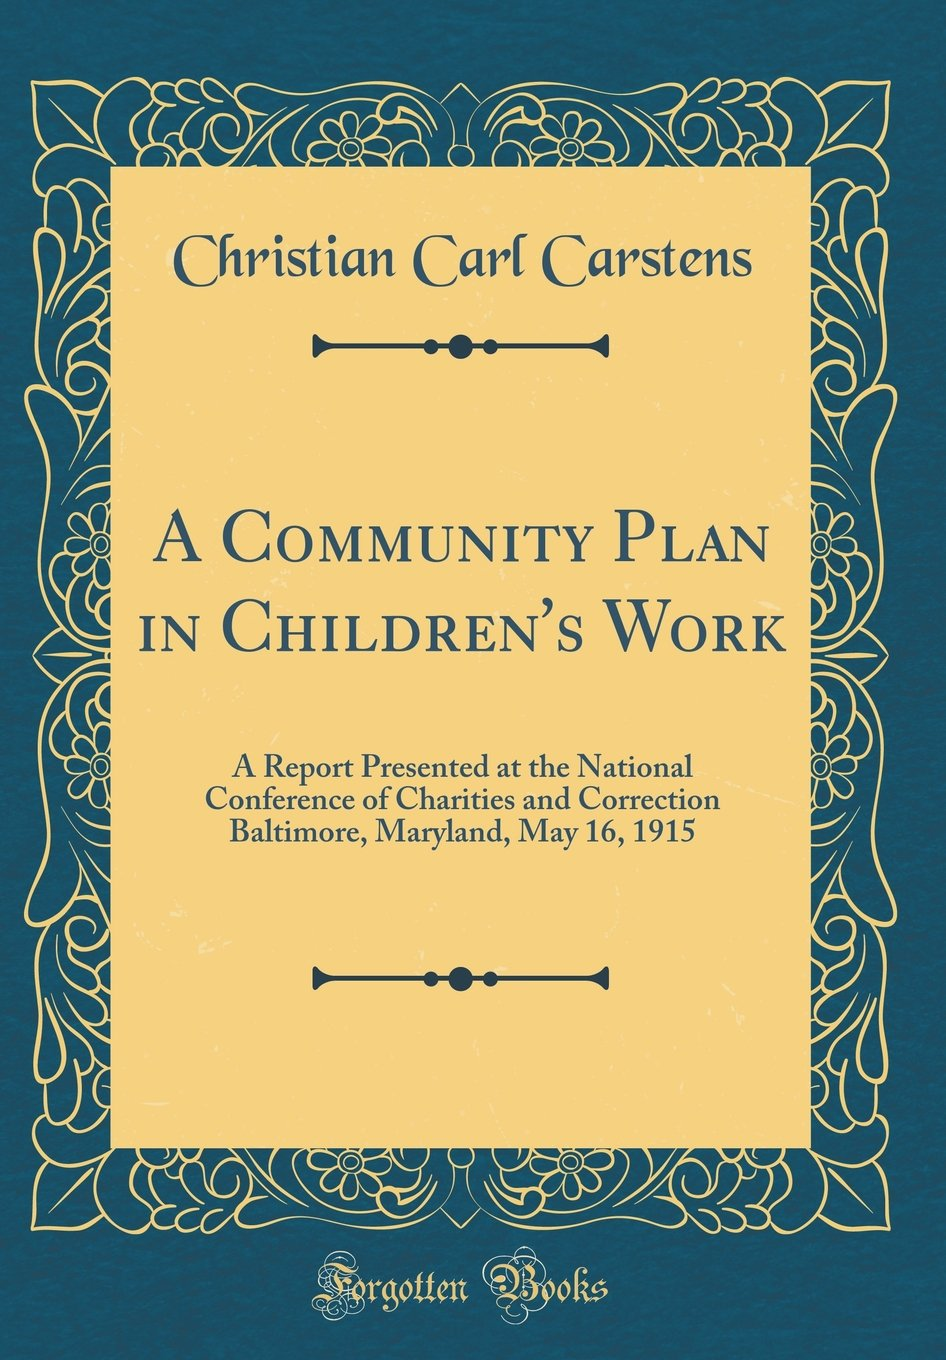 A Community Plan in Children's Work: A Report Presented at the National Conference of Charities and Correction Baltimore, Maryland, May 16, 1915 (Classic Reprint) ebook